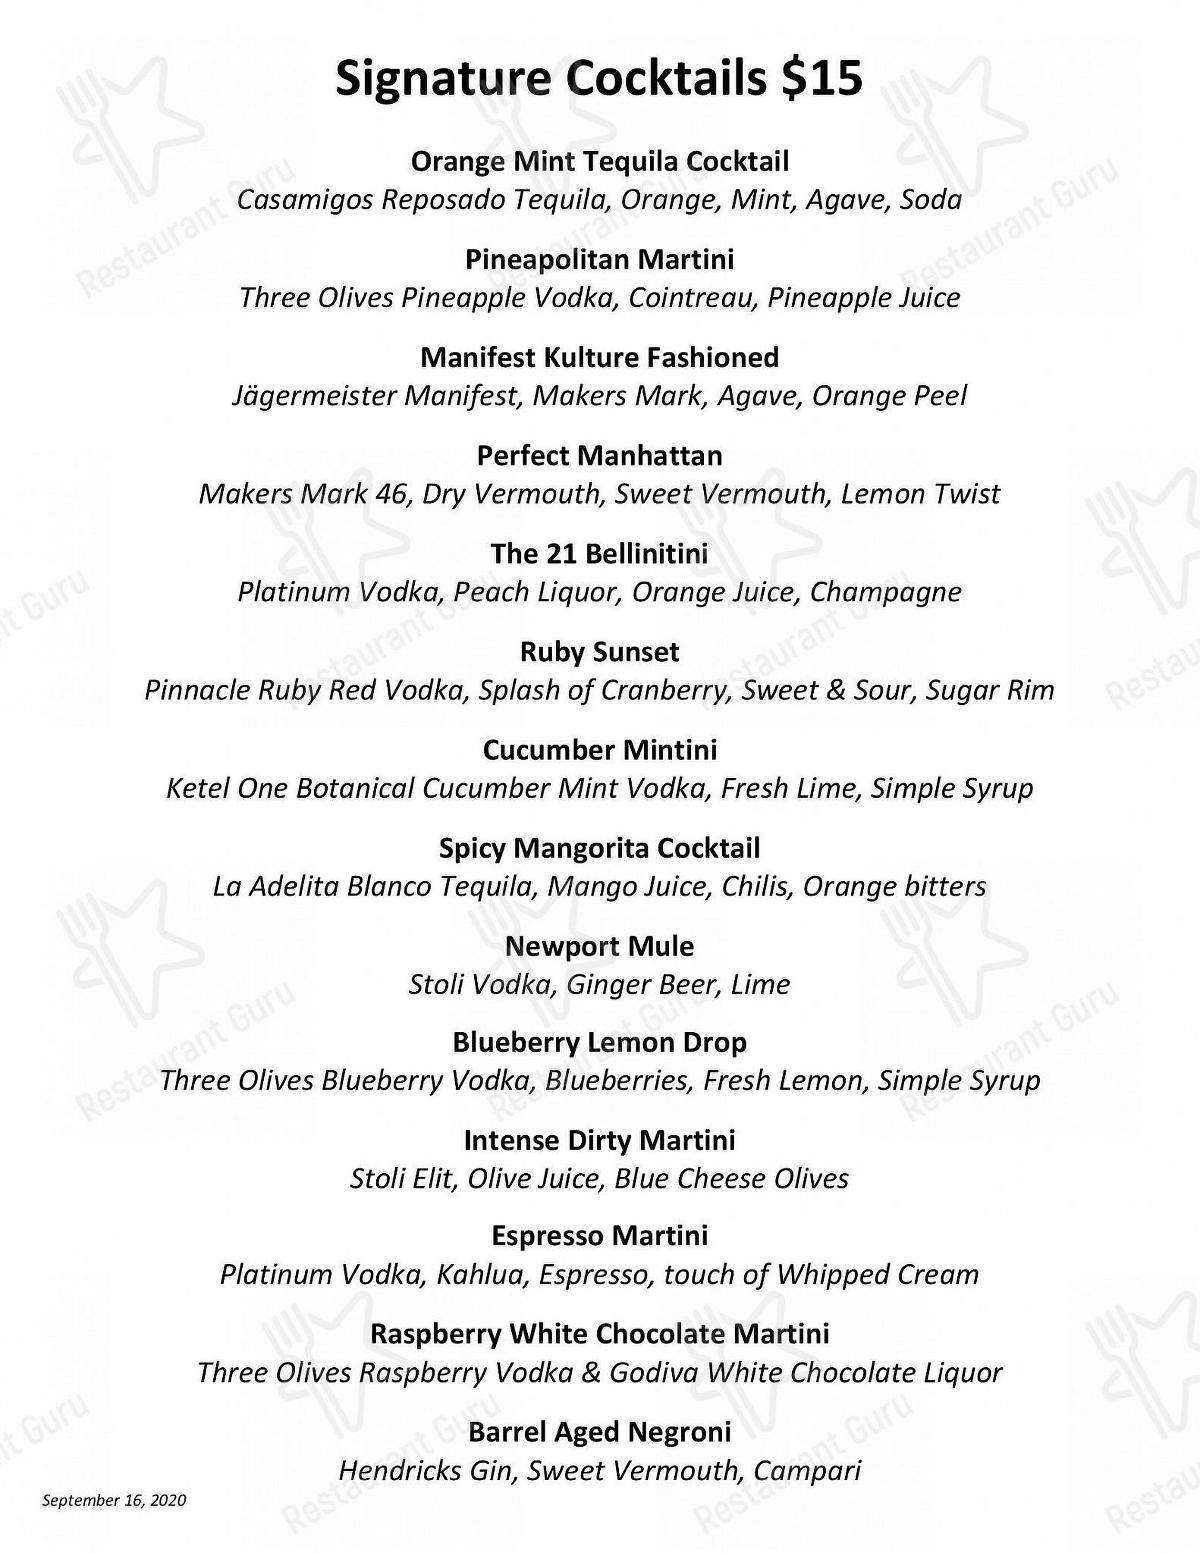 21 Oceanfront menu - meals and drinks